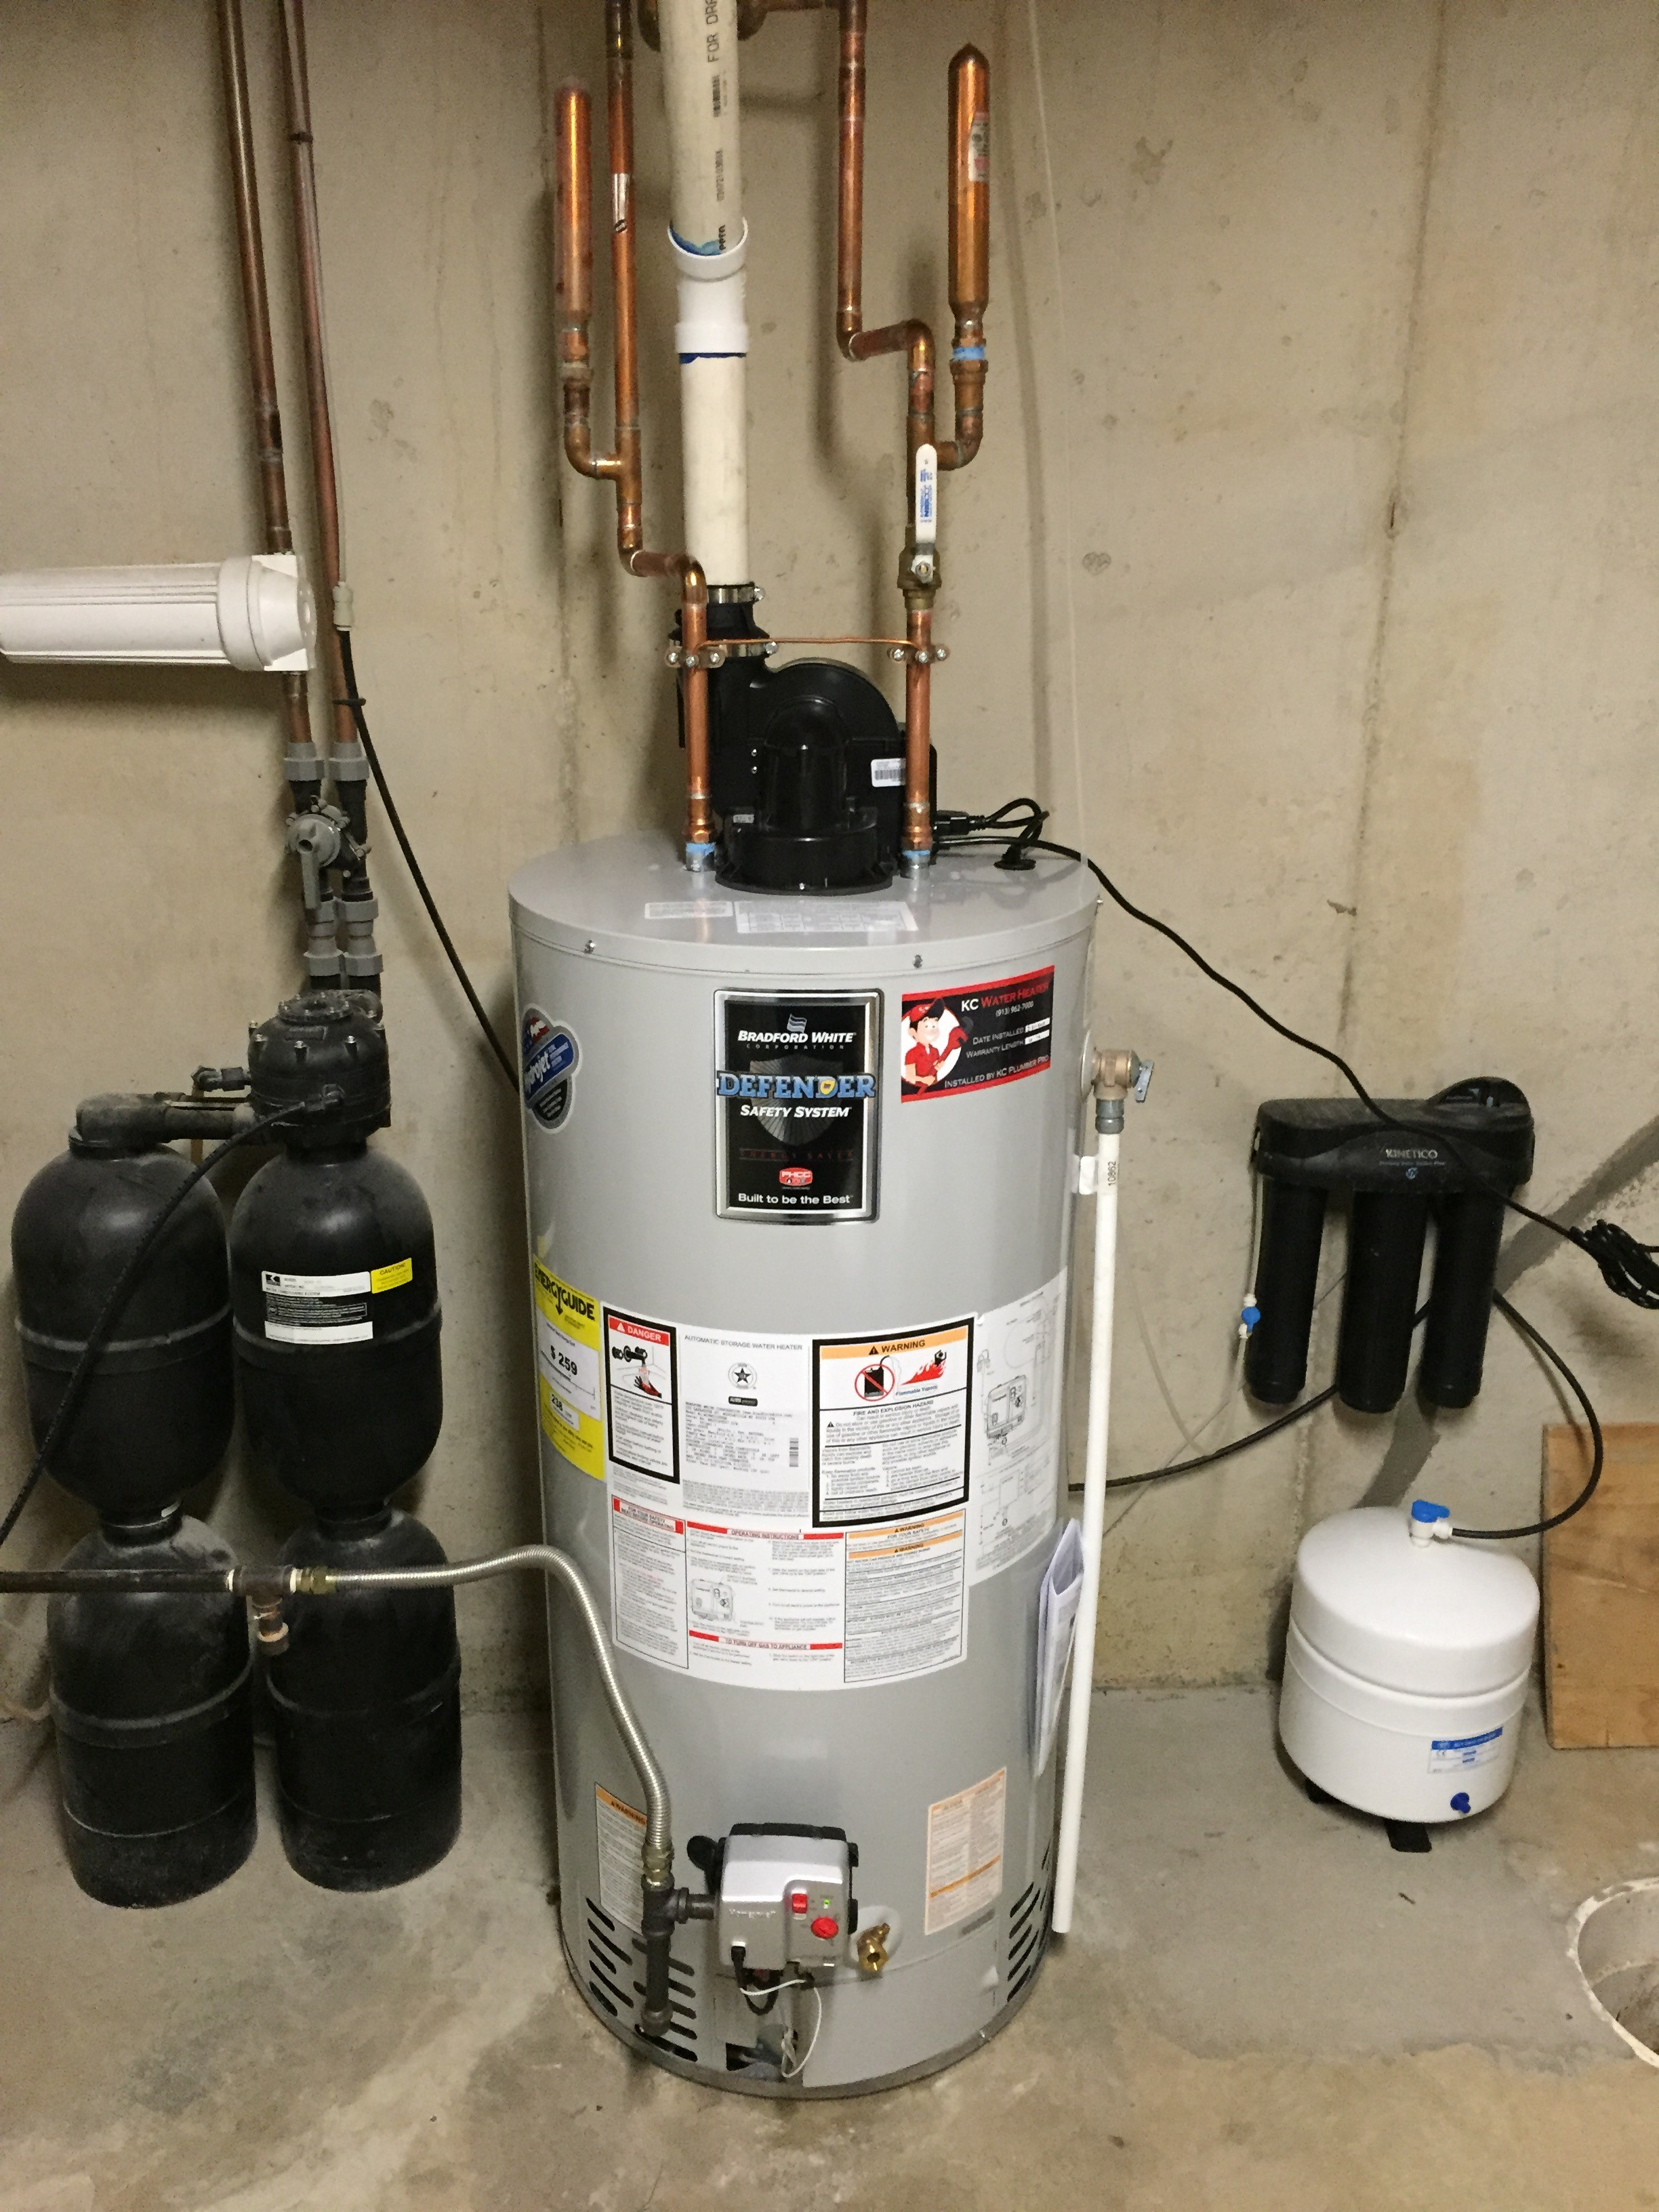 How to vent a hot water heater - Power Vent Water Heater Lenexa